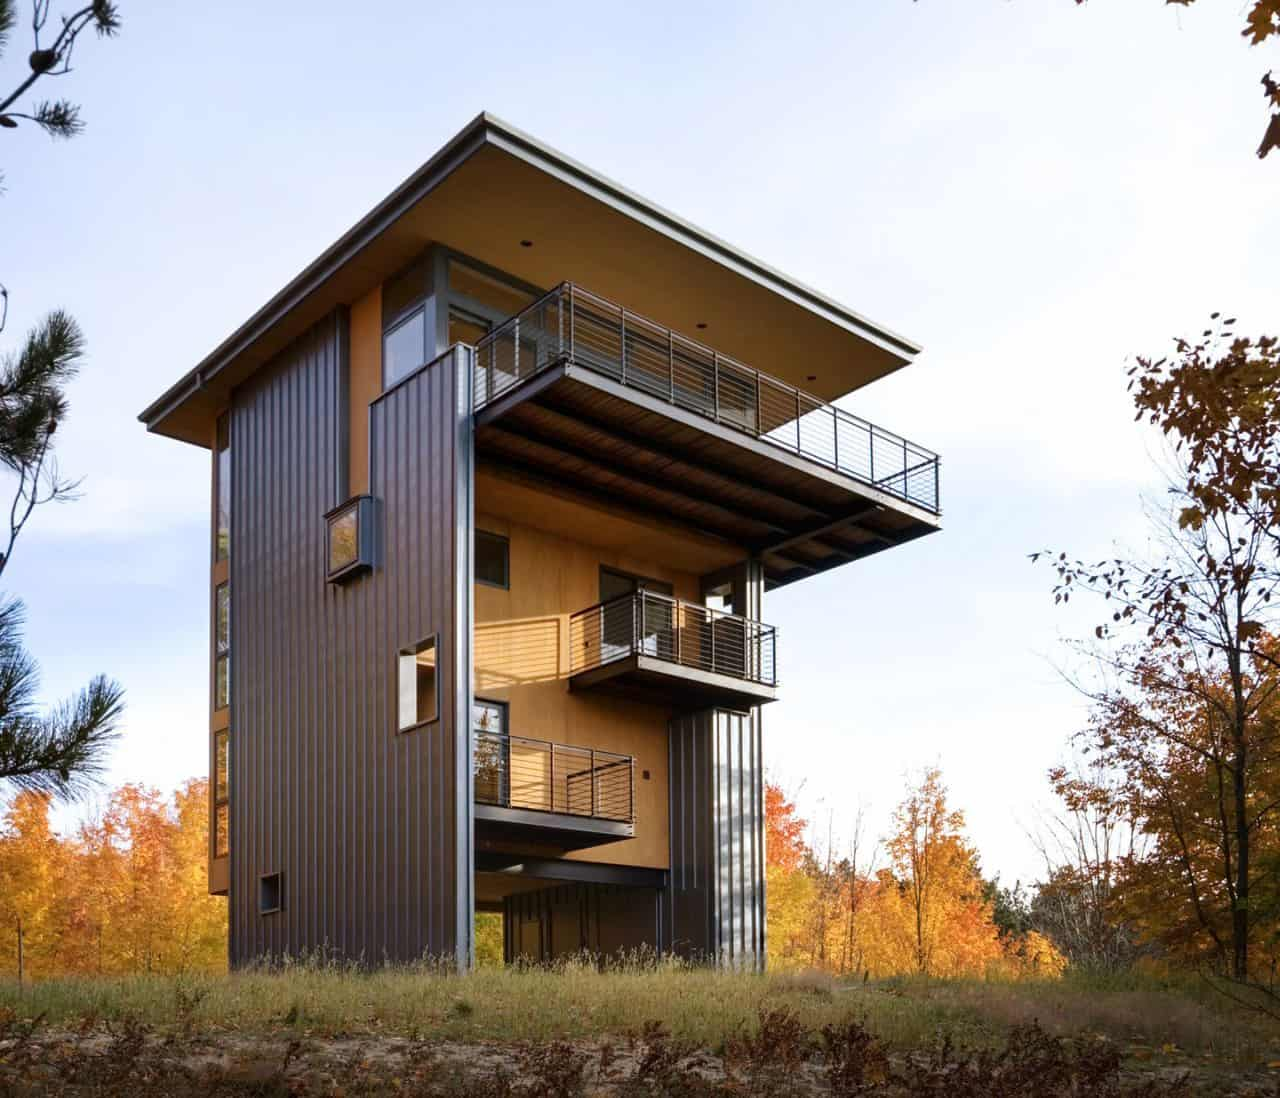 4-Storey Tall House Reaches Above the Forest to See the ...